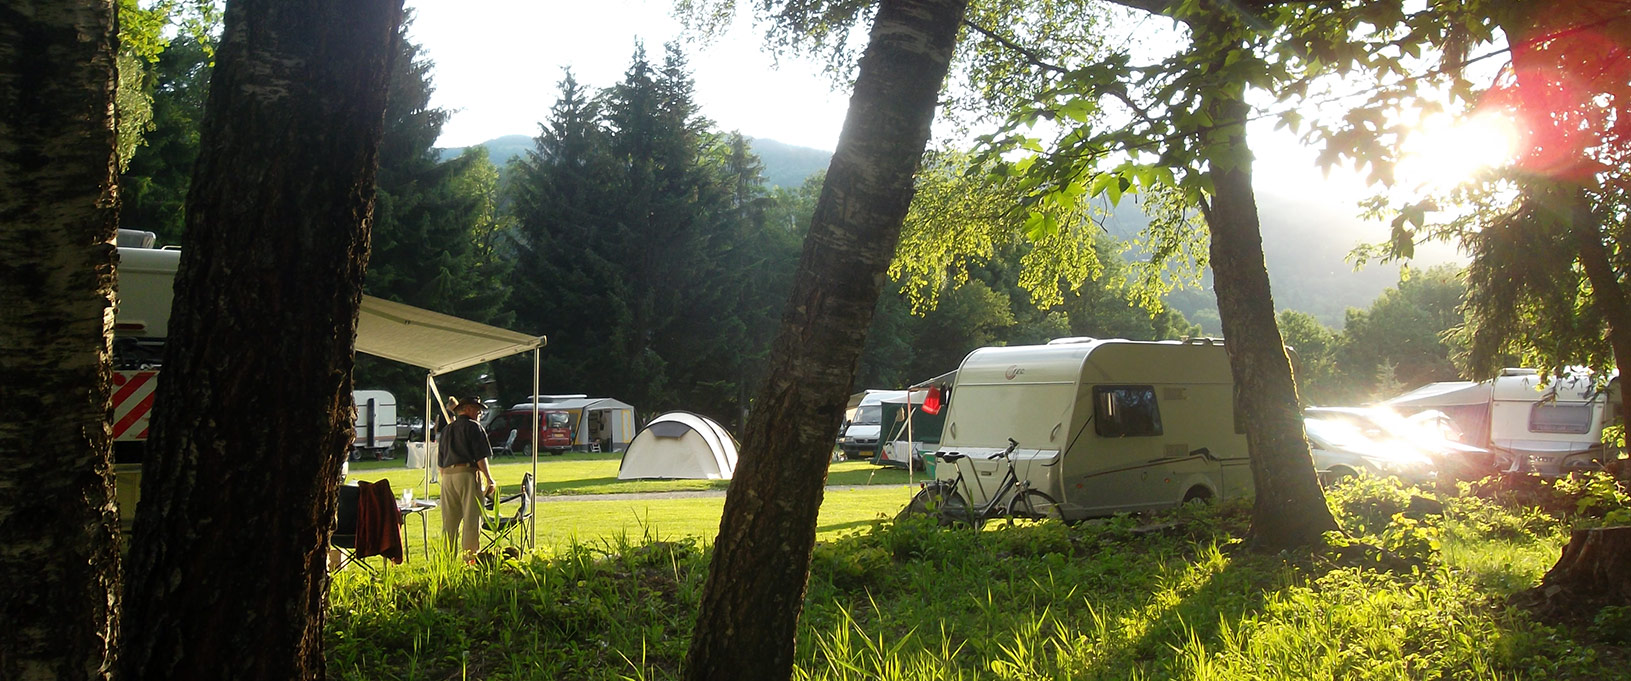 Accueil Camping Miage 05